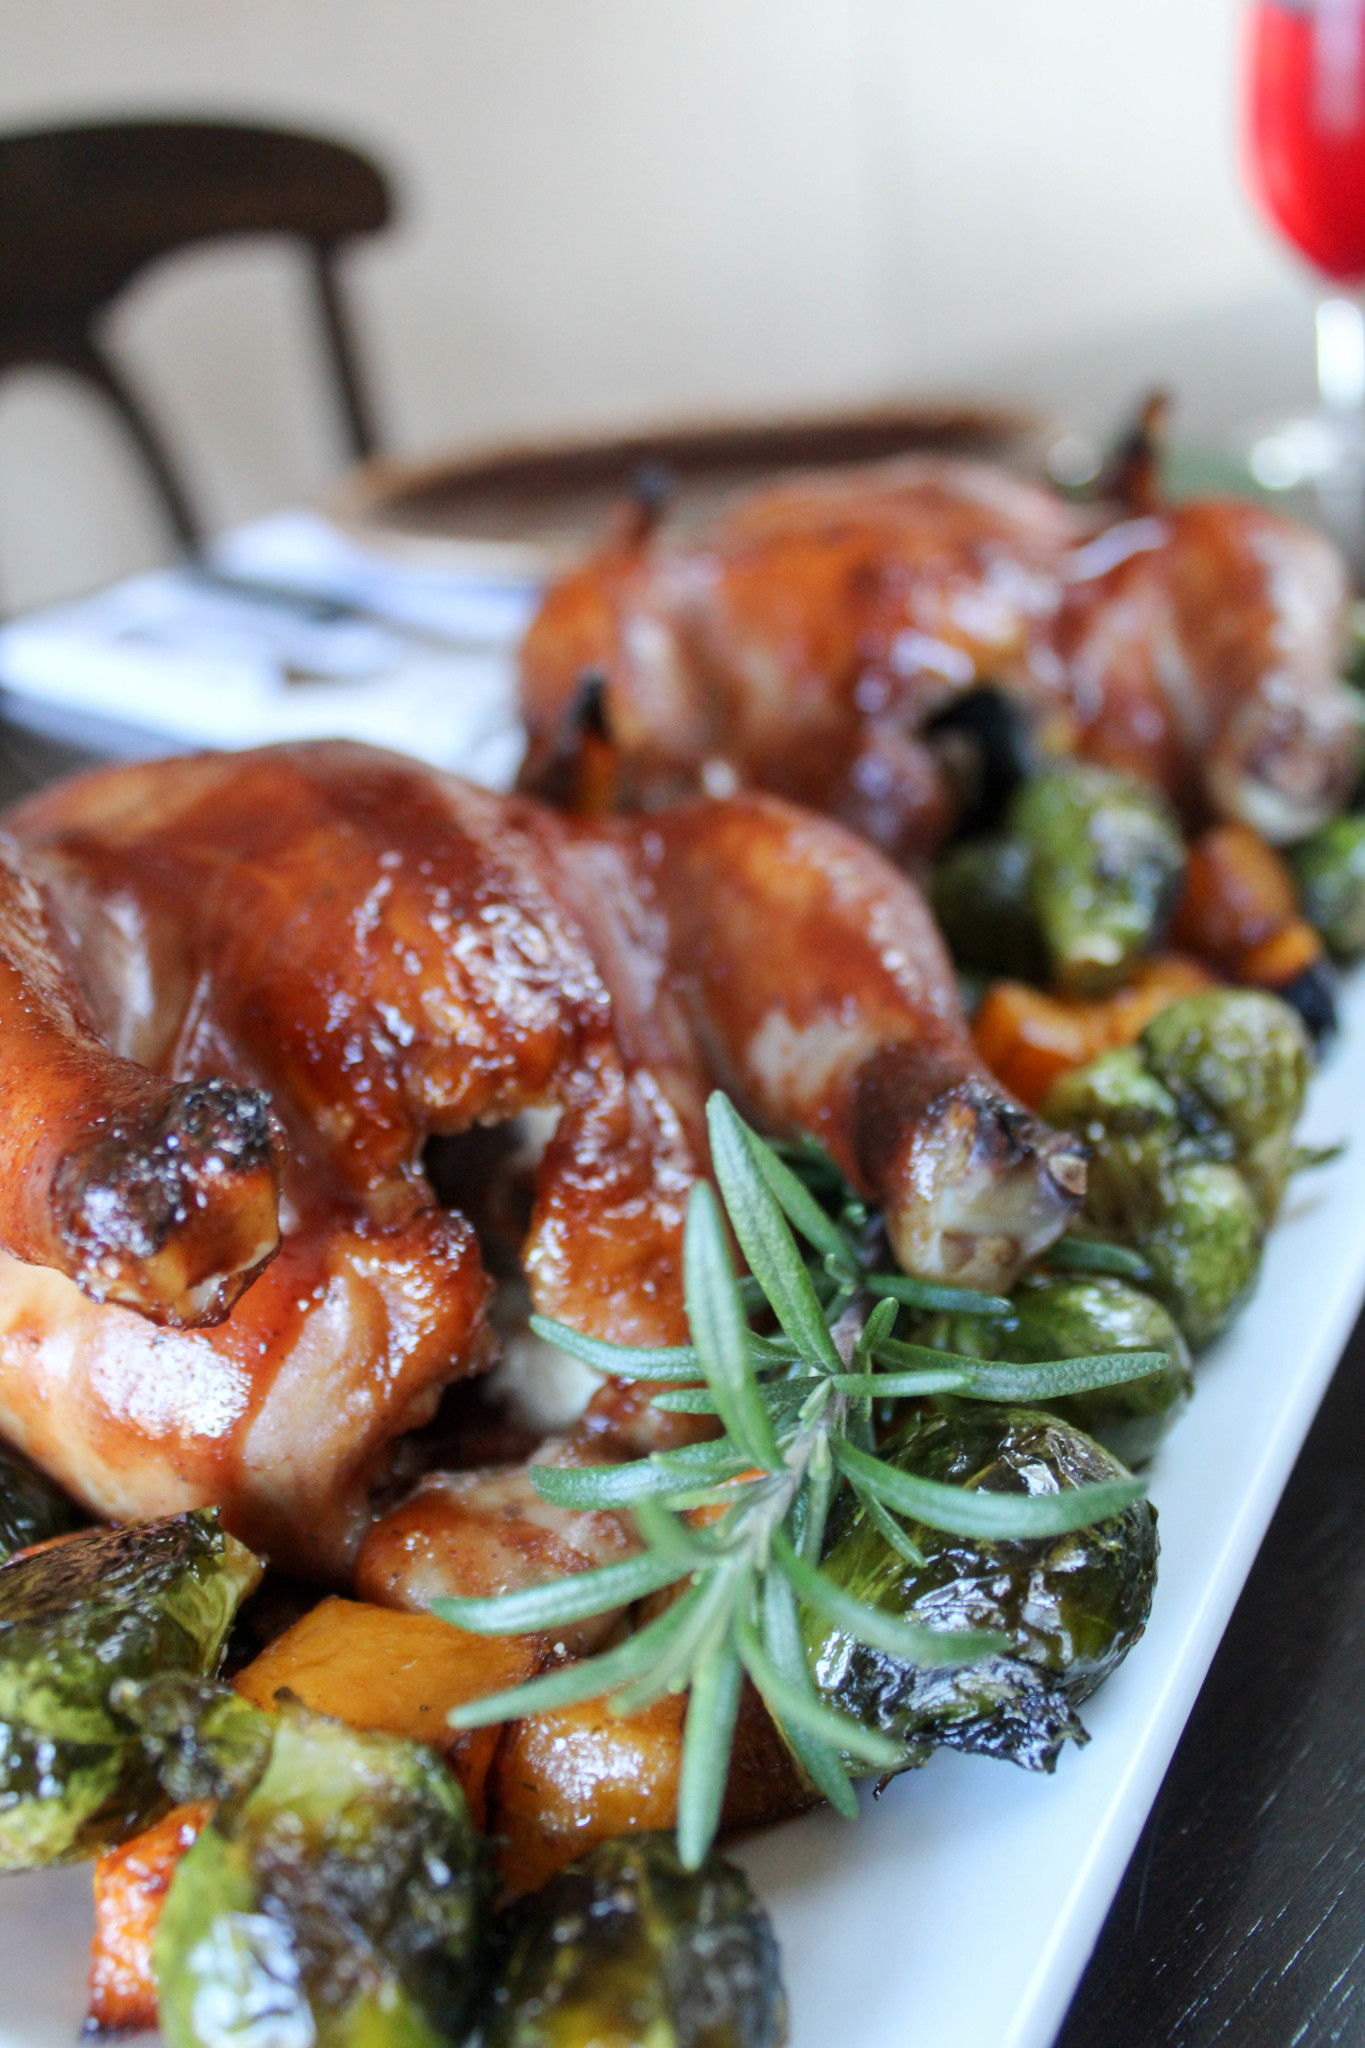 Tyson Cornish hens